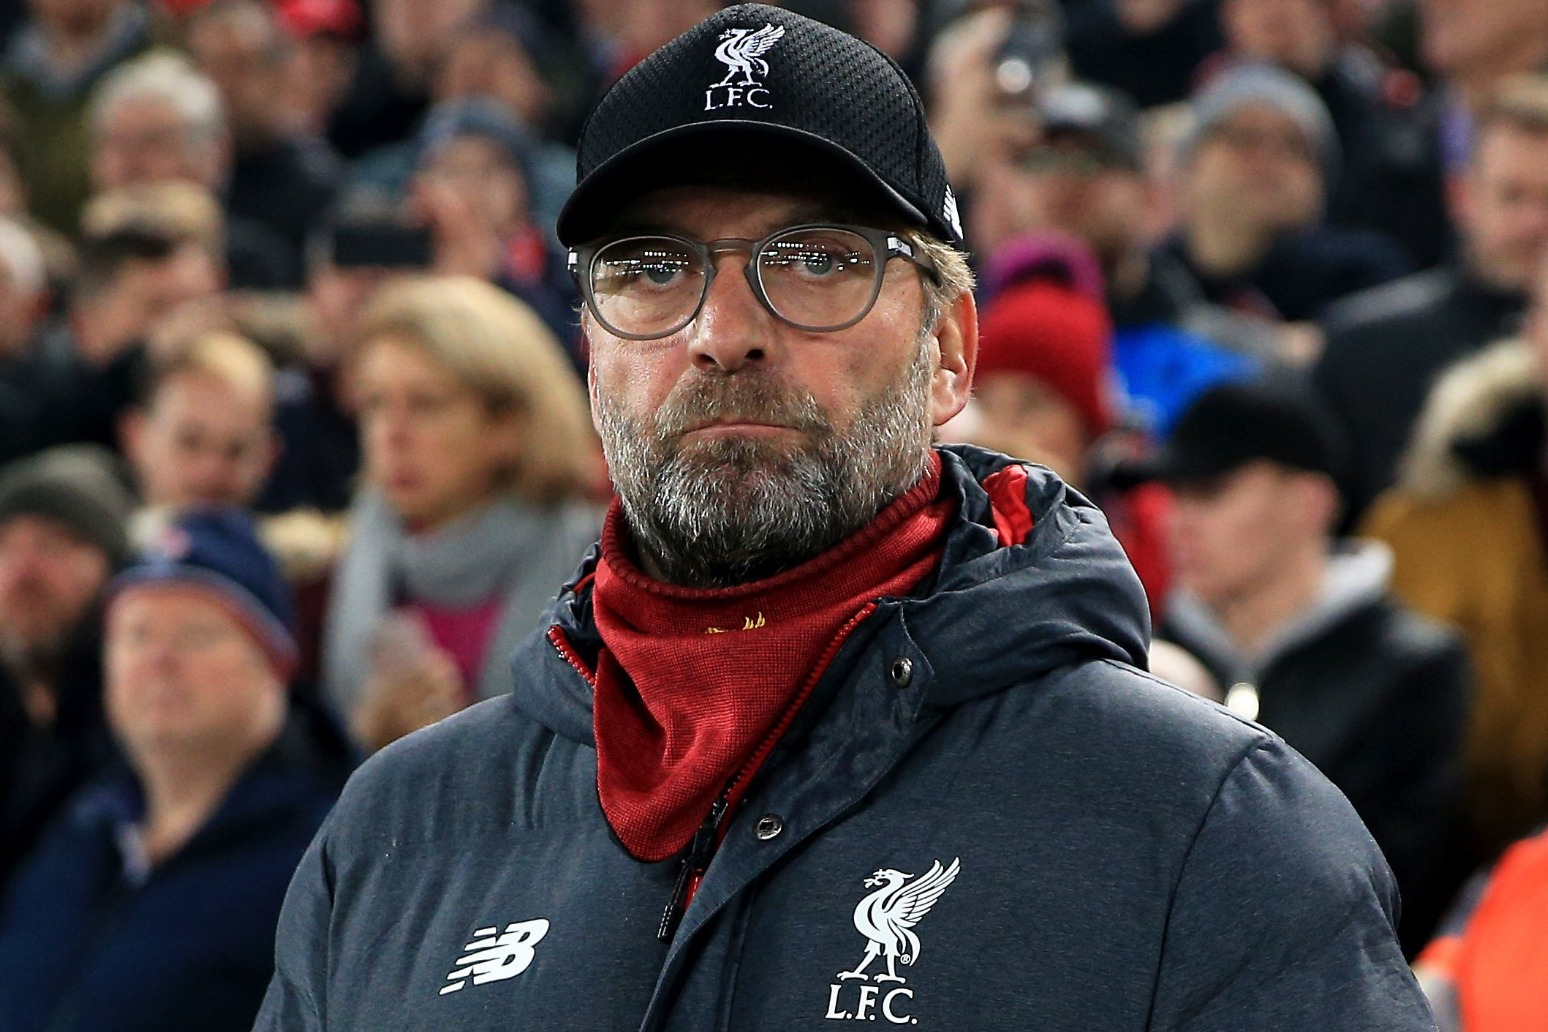 KLOPP NOT FEELING PRESSURE AS LIVERPOOL OPEN HUGE LEAD IN TITLE RACE